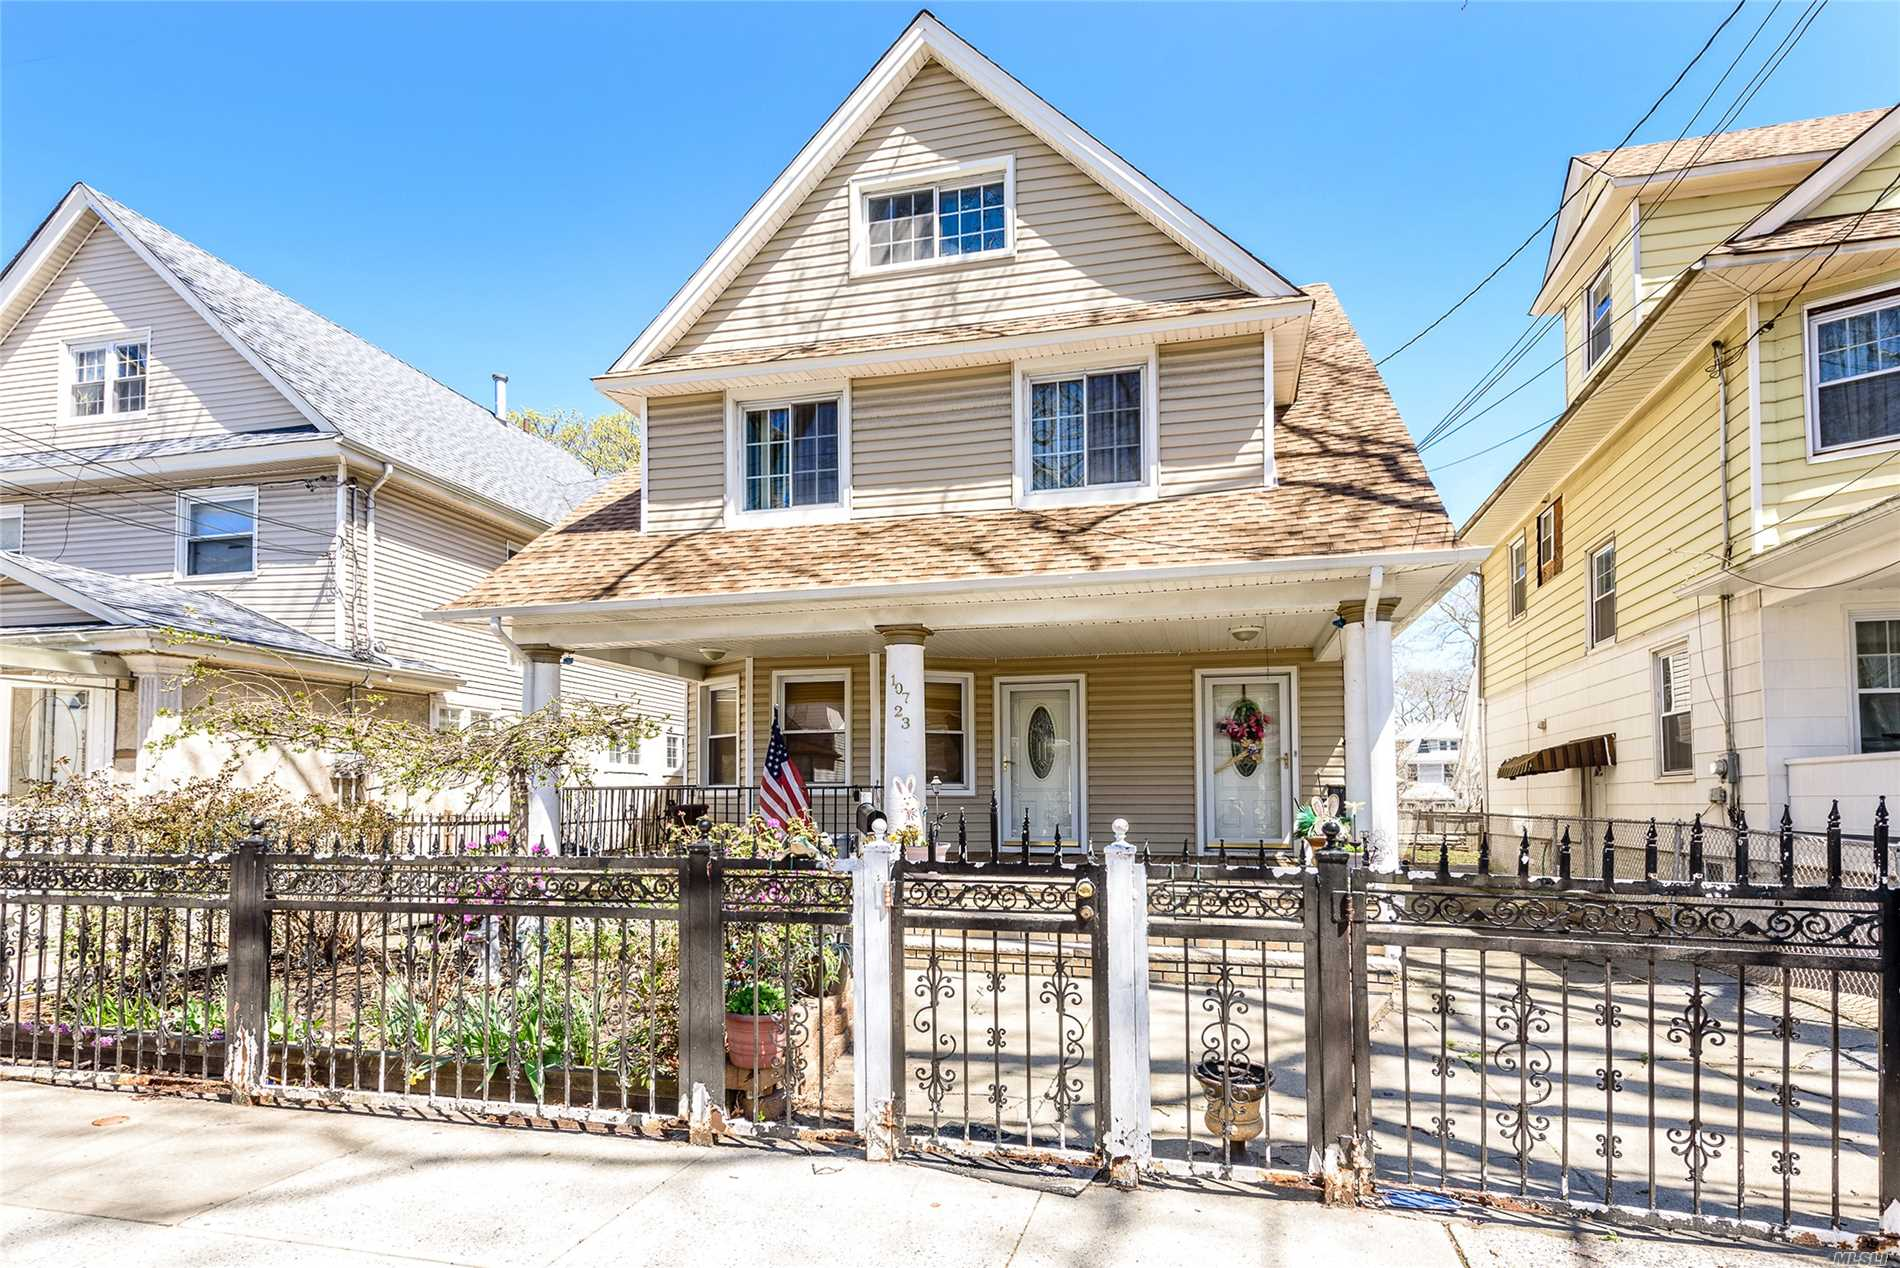 2 Family Detached, Victorian House In The Heart Of South Richmond Hills, 5 Bedrooms 2 Bathrooms, Finished Basement , 2 Car Garage, Private Driveway. New Roof And Siding , Near Van Wyck Expressway, Jfk Airport, Transportation Train # A, E, J , Z And Lirr, Supermarket And Much More !!!! Easy To Show It